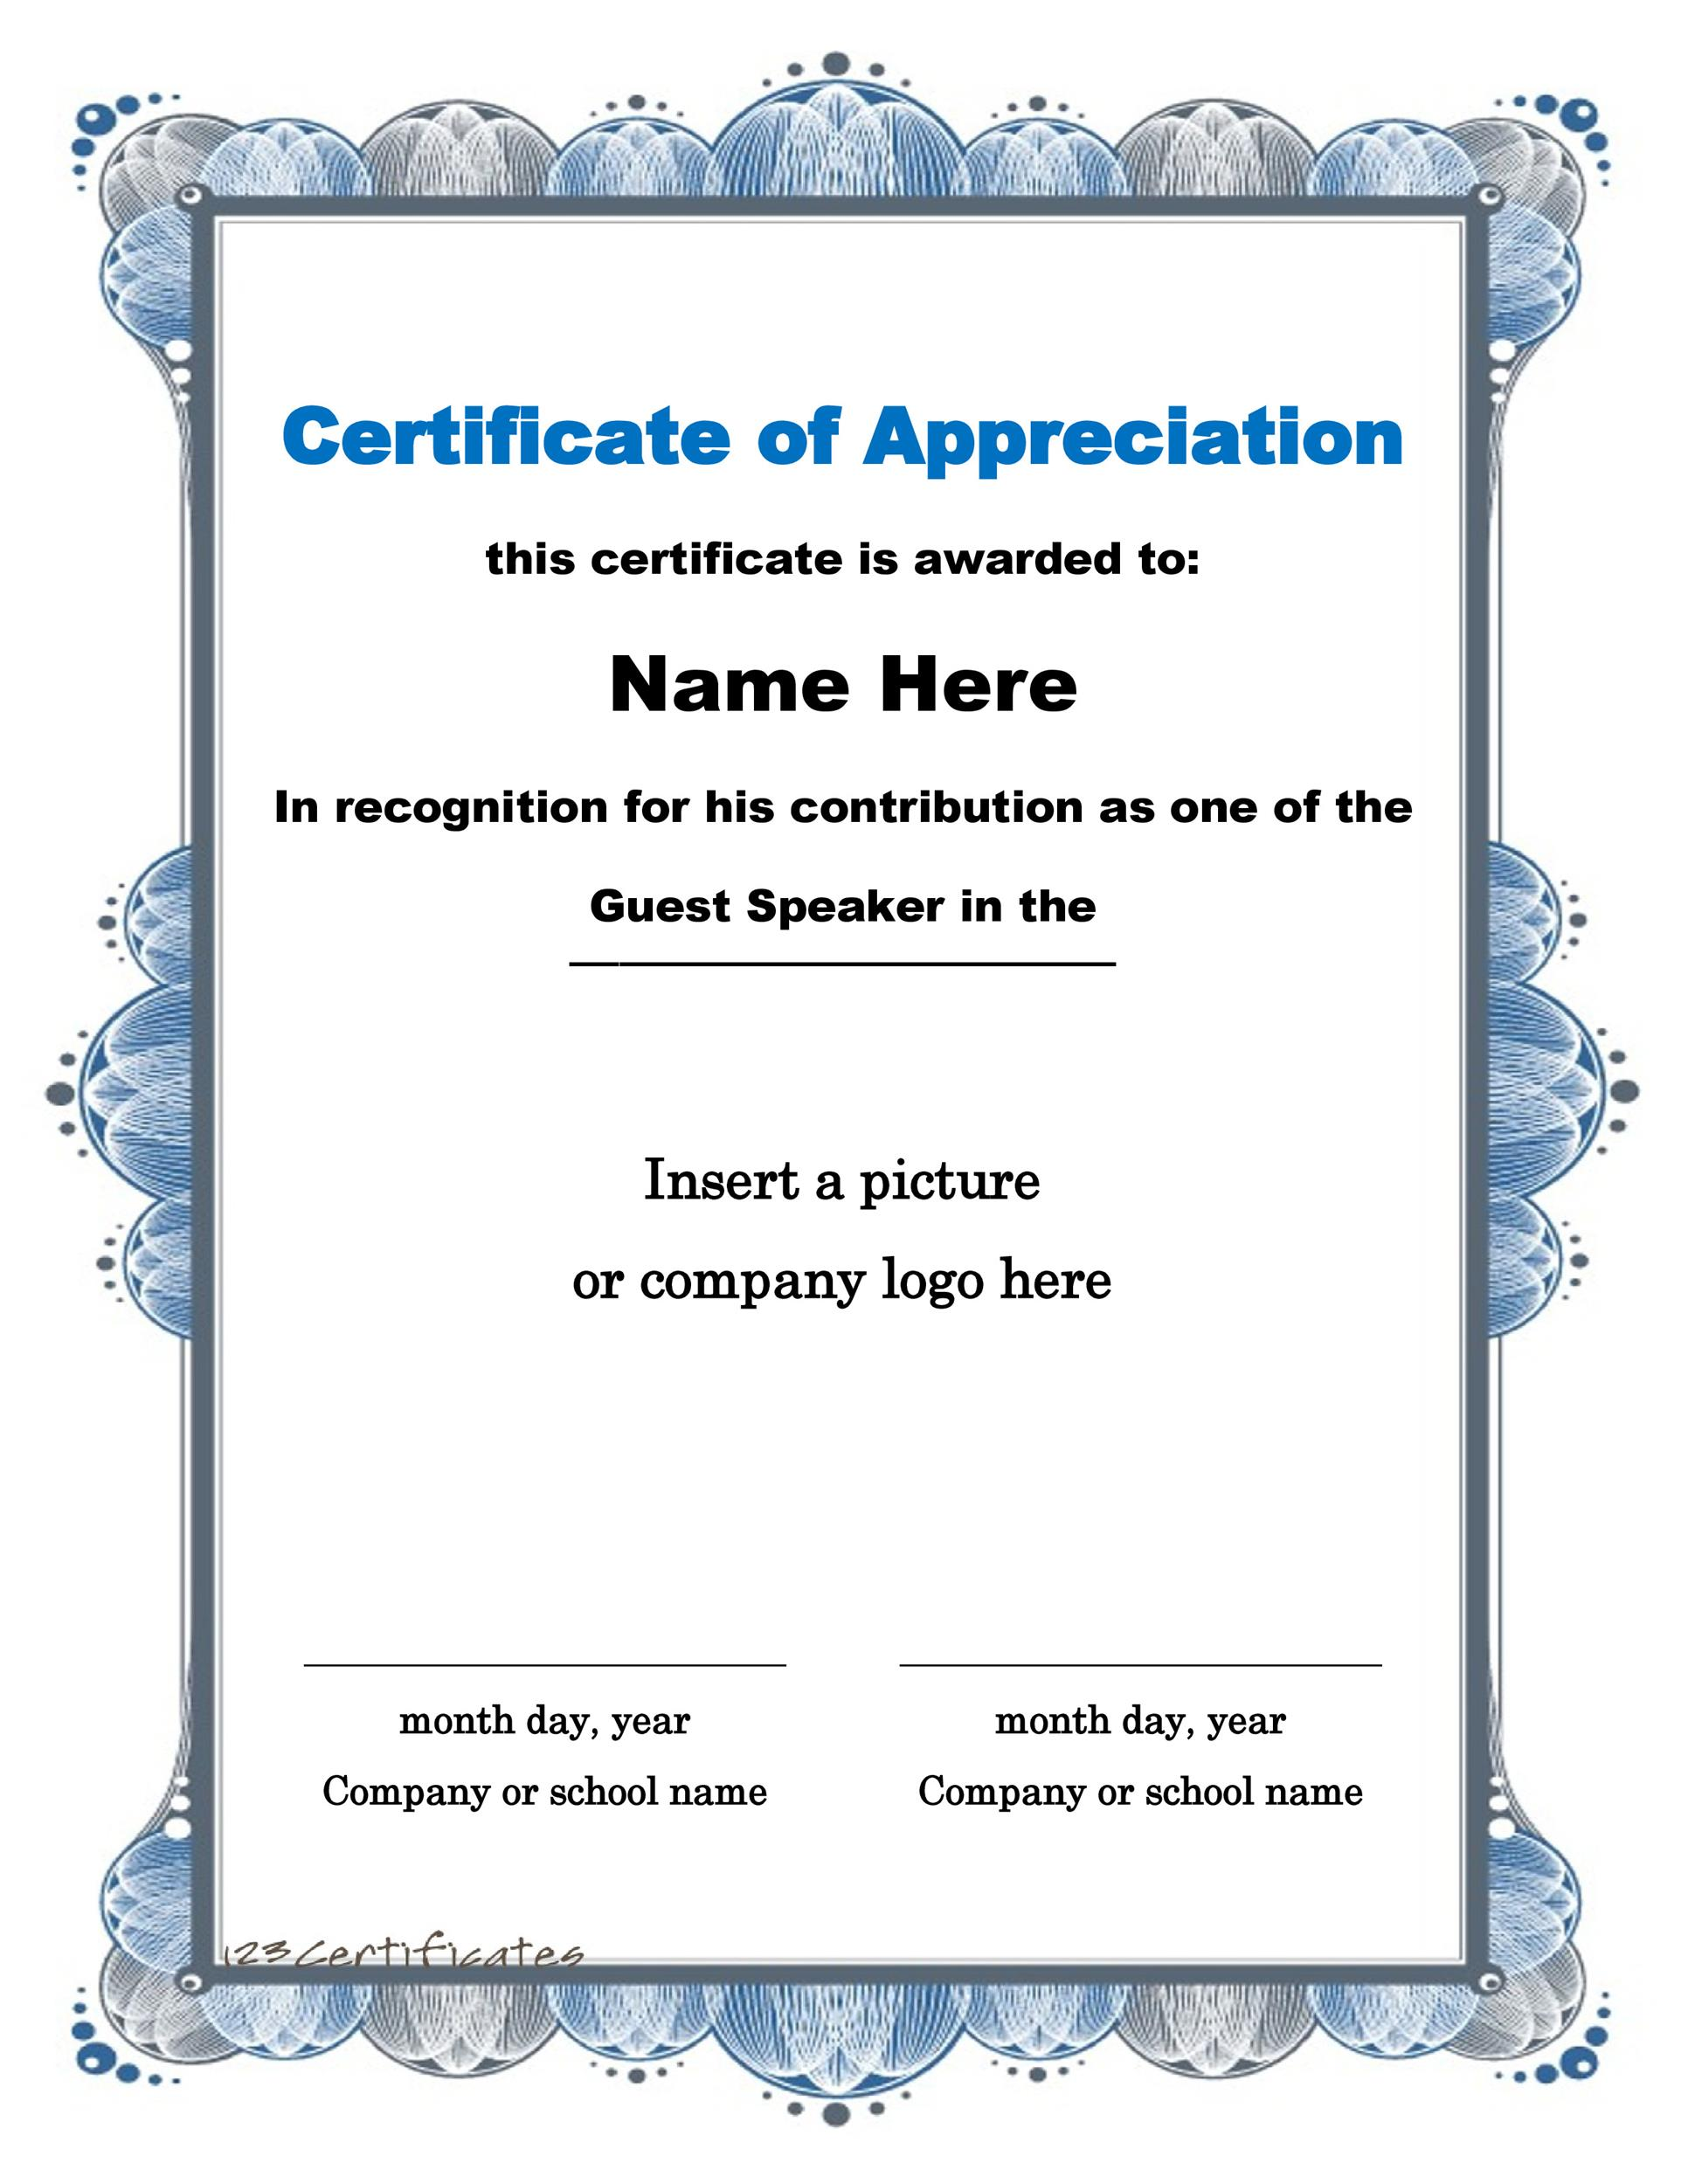 30 Free Certificate of Appreciation Templates and Letters - Certificate Of Service Template